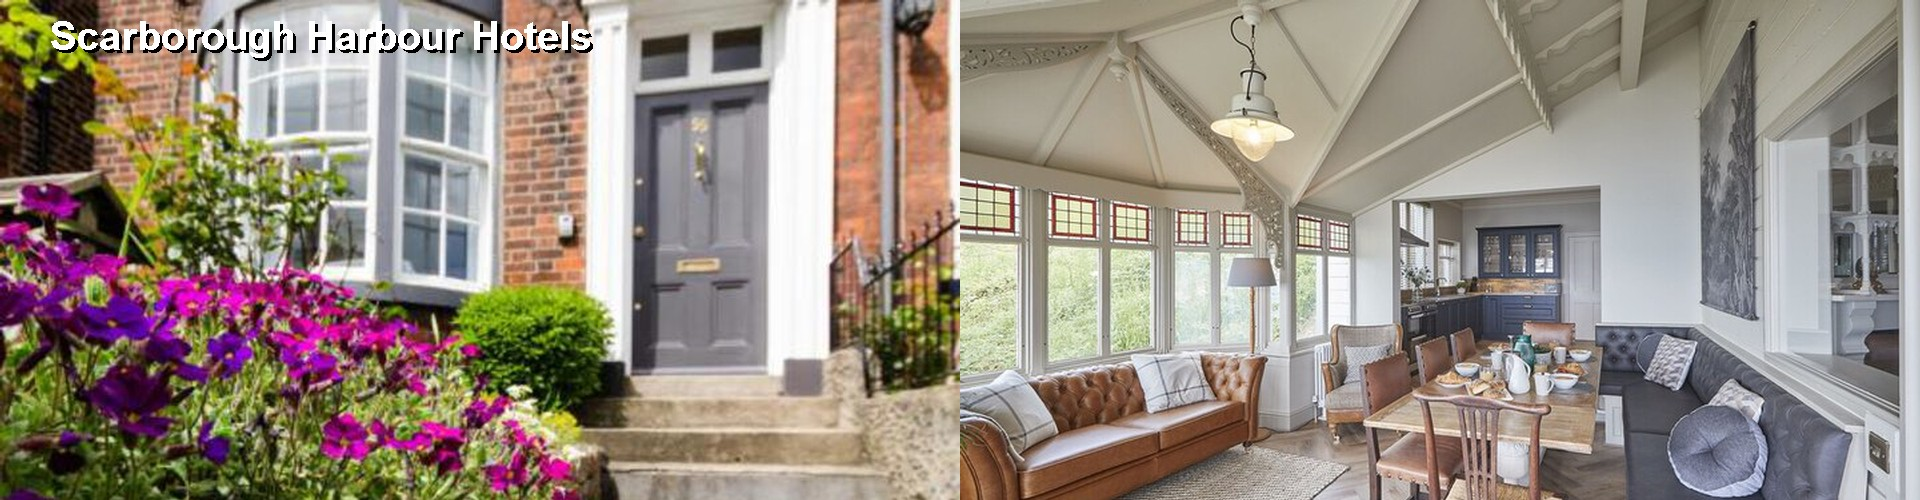 2 Best Hotels near Scarborough Harbour